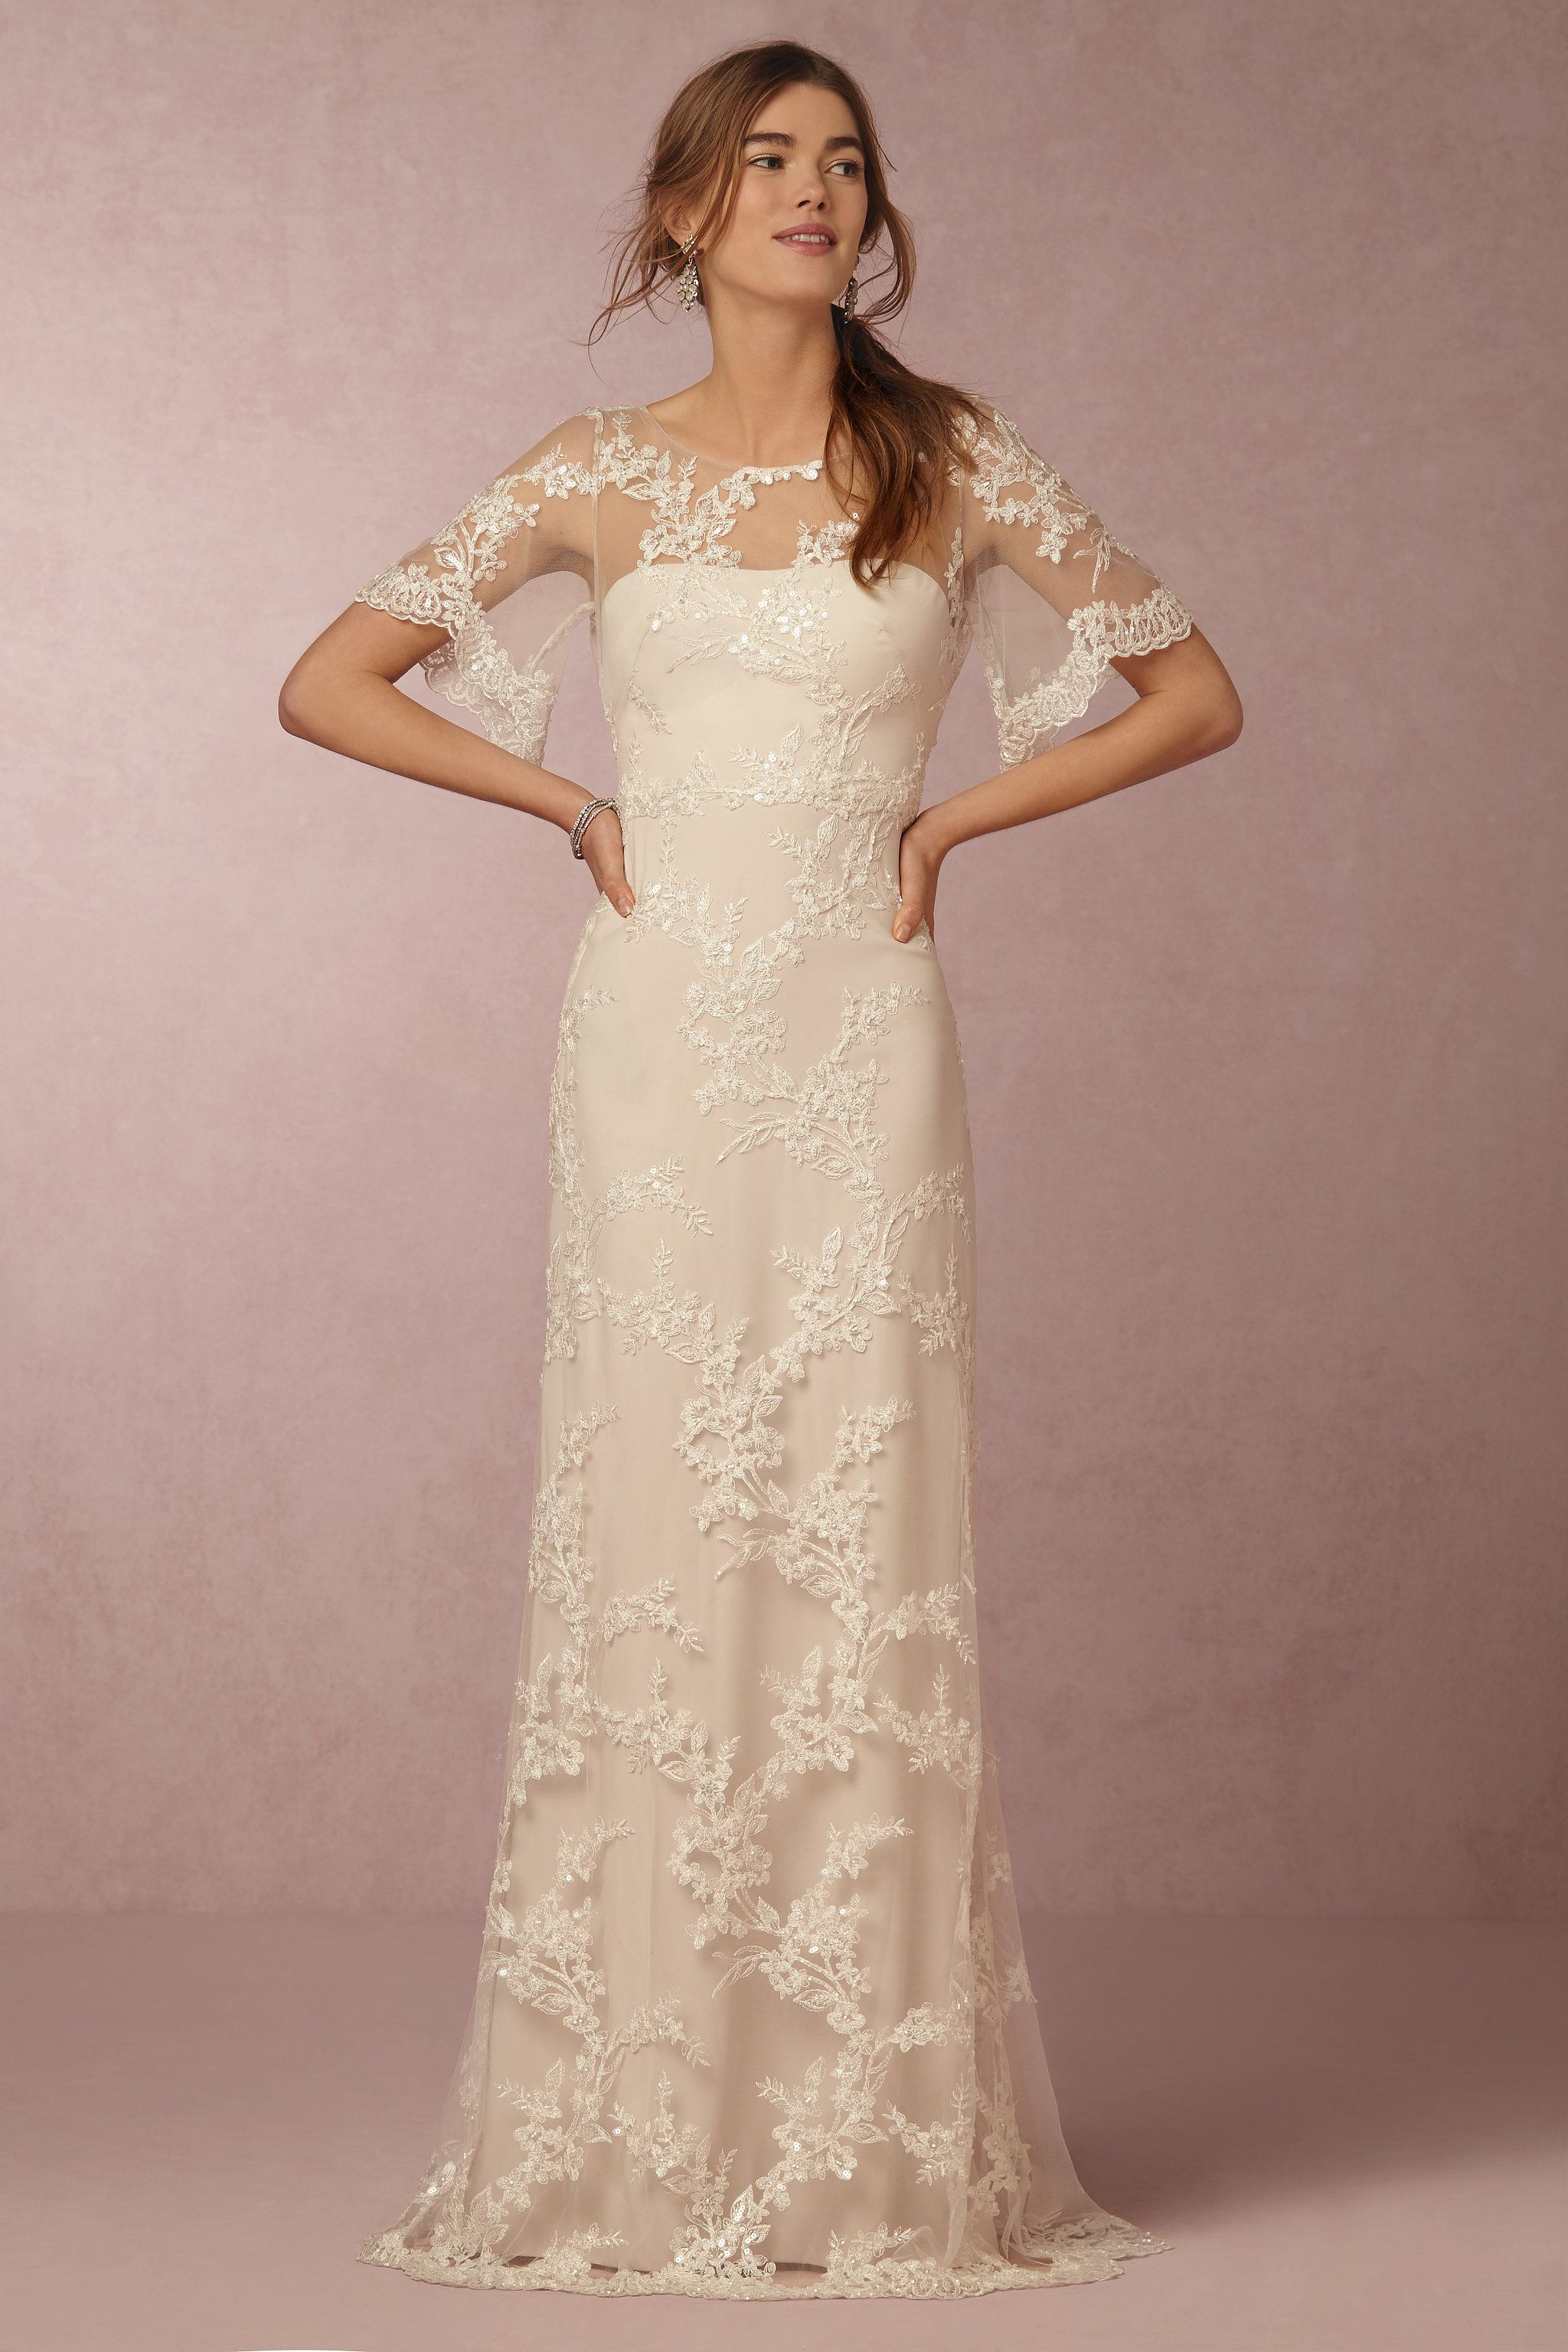 53af2490fb158 Marchesa and BHLDN Have Teamed Up For the Most Stunning Bridal Collection